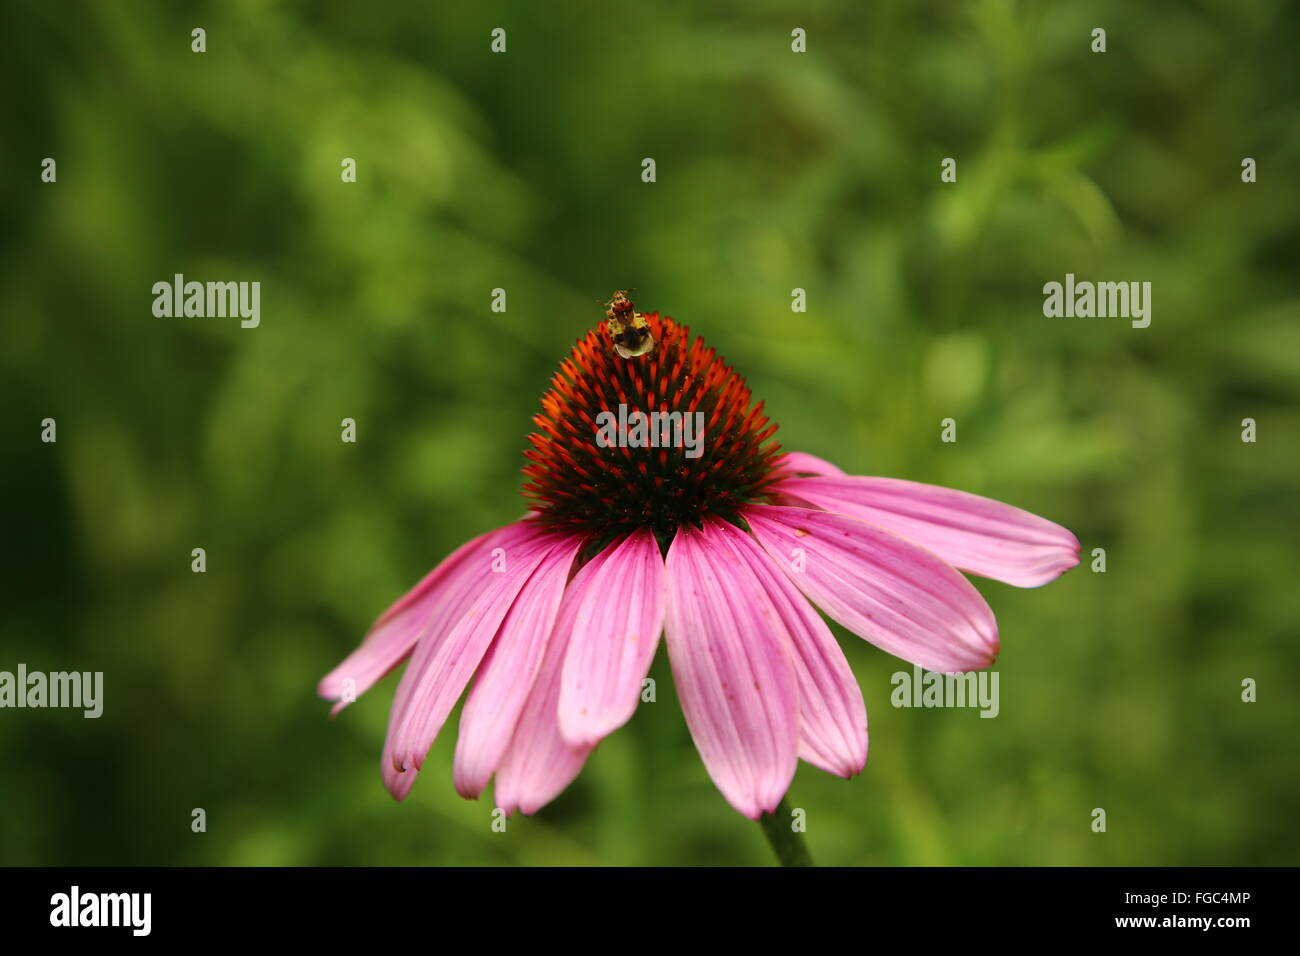 Close-Up Of Insect Pollinating Eastern Purple Coneflower - Stock Image